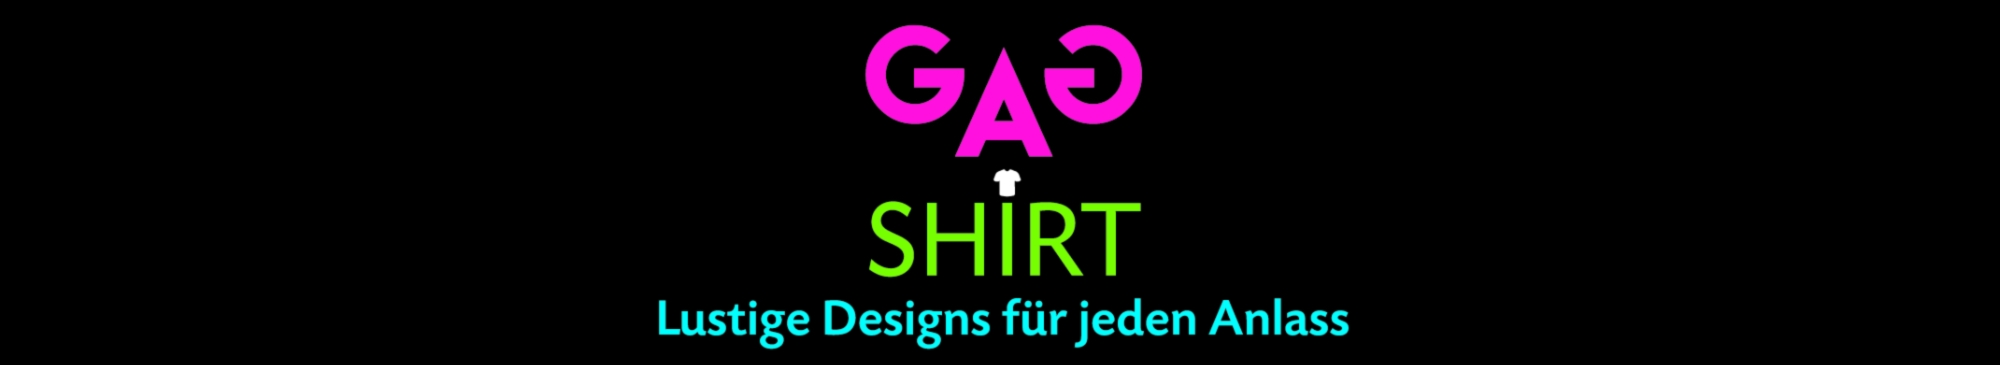 Showroom - GAGSHIRT